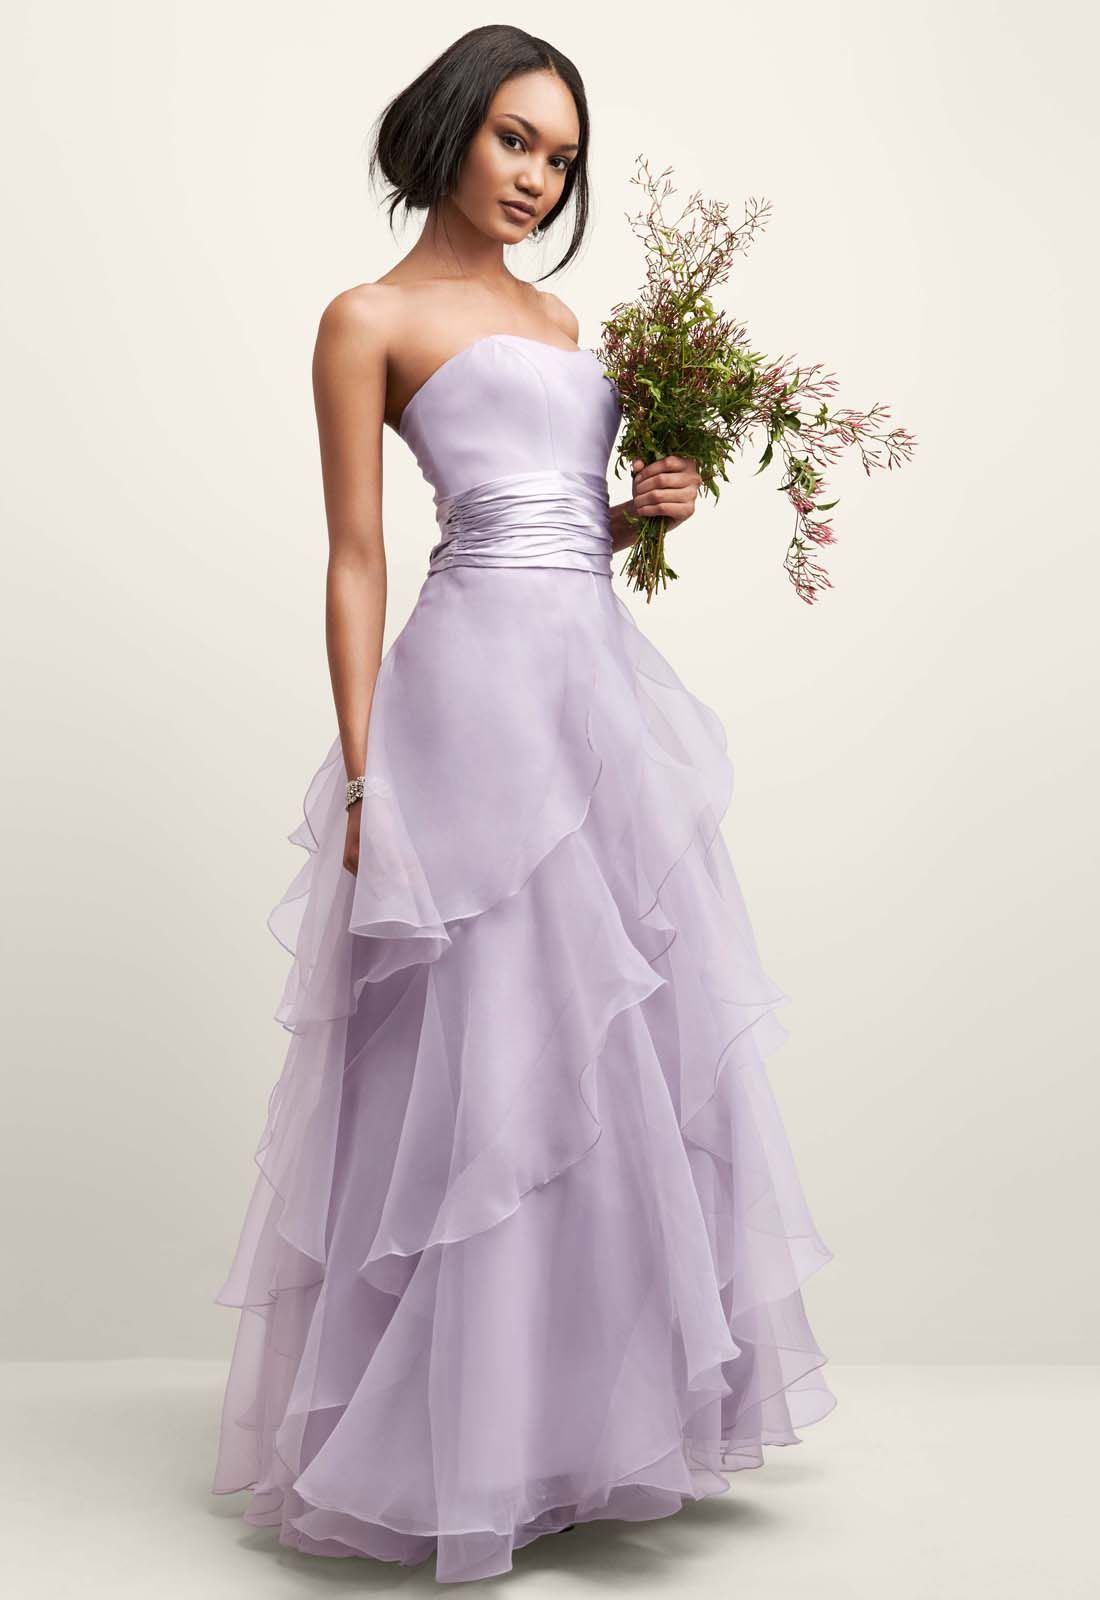 So It's Still Pale Enough To Be A Wedding Dress Without Being White: Pale Lilac Wedding Dress At Reisefeber.org